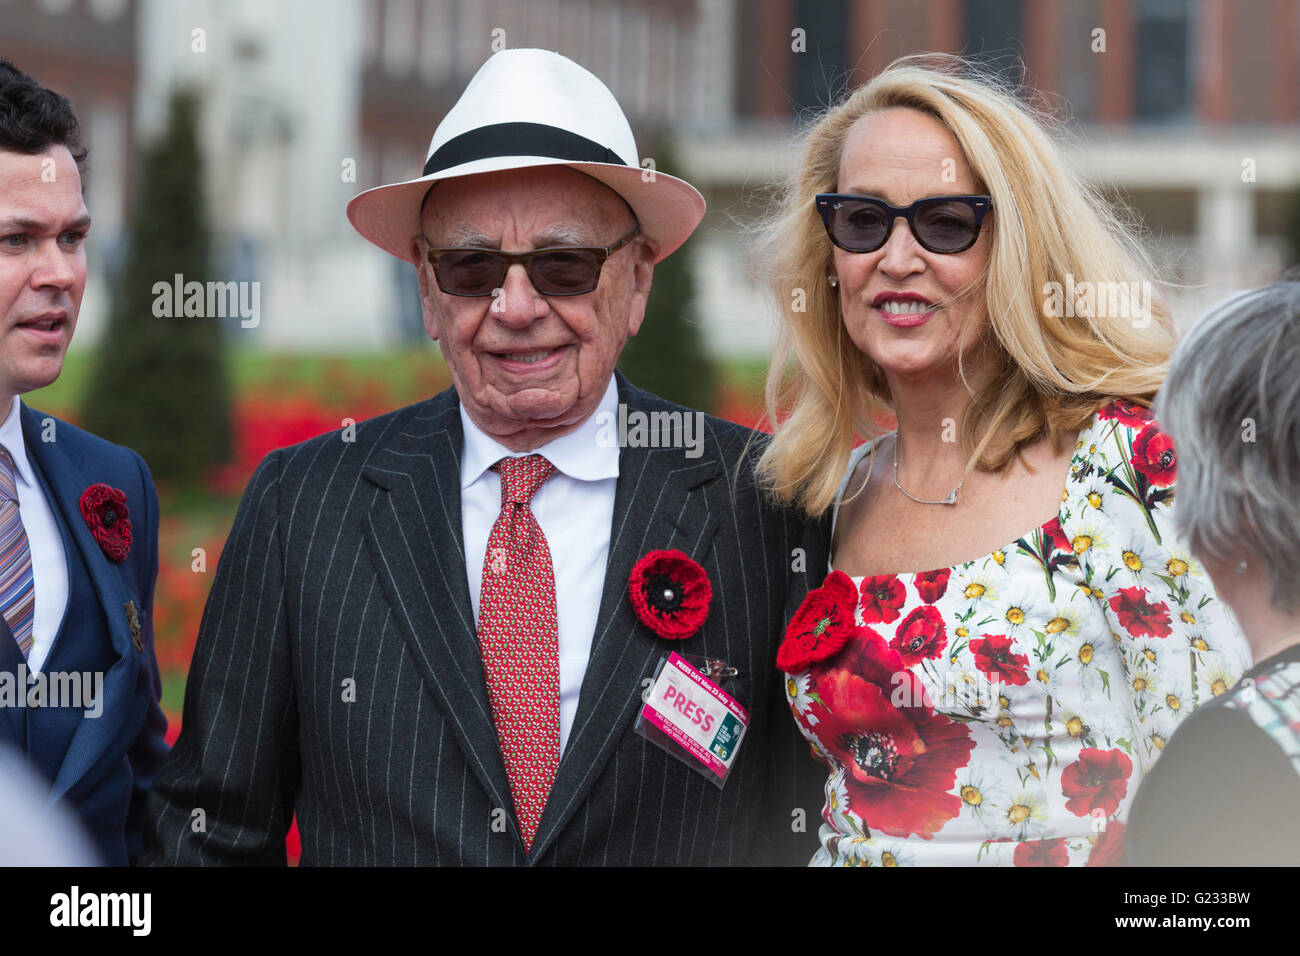 London, UK. 23 May 2016. Rupert Murdoch and Jerry Hall. Press day at the RHS Chelsea Flower Show. The 2016 show - Stock Image